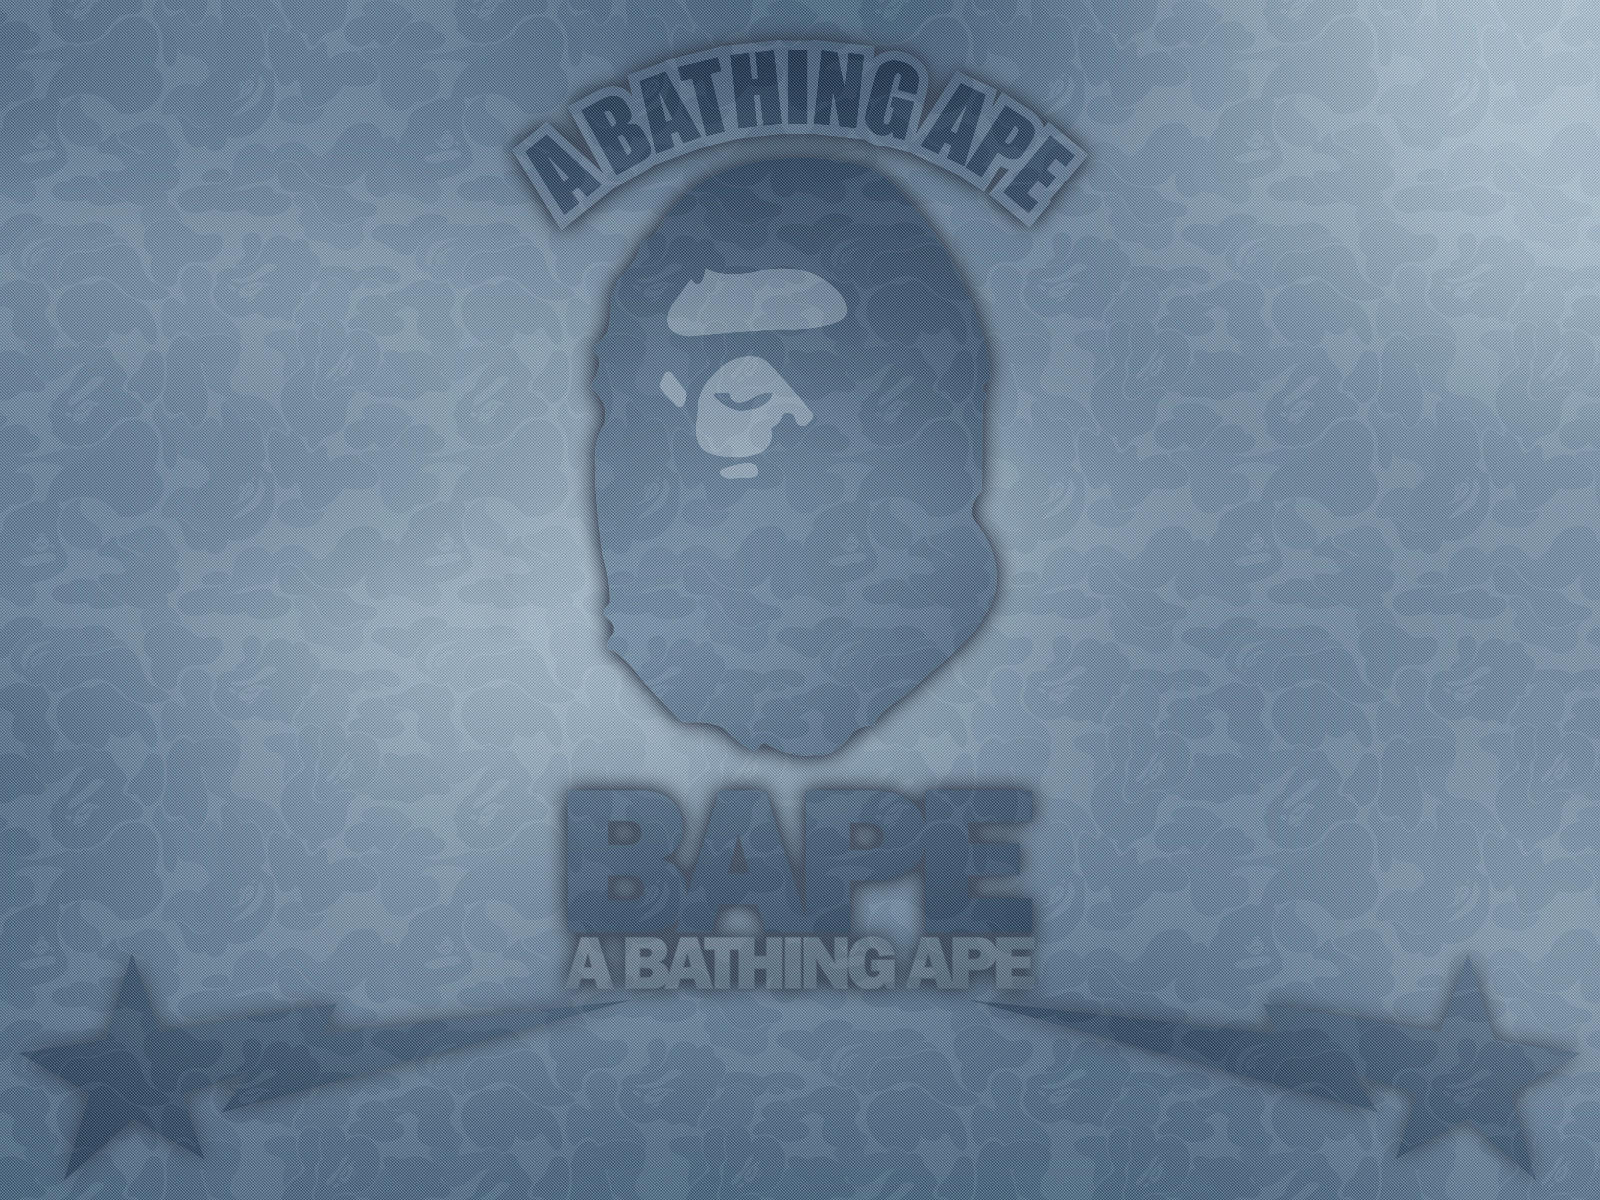 A Bathing Ape by krazione